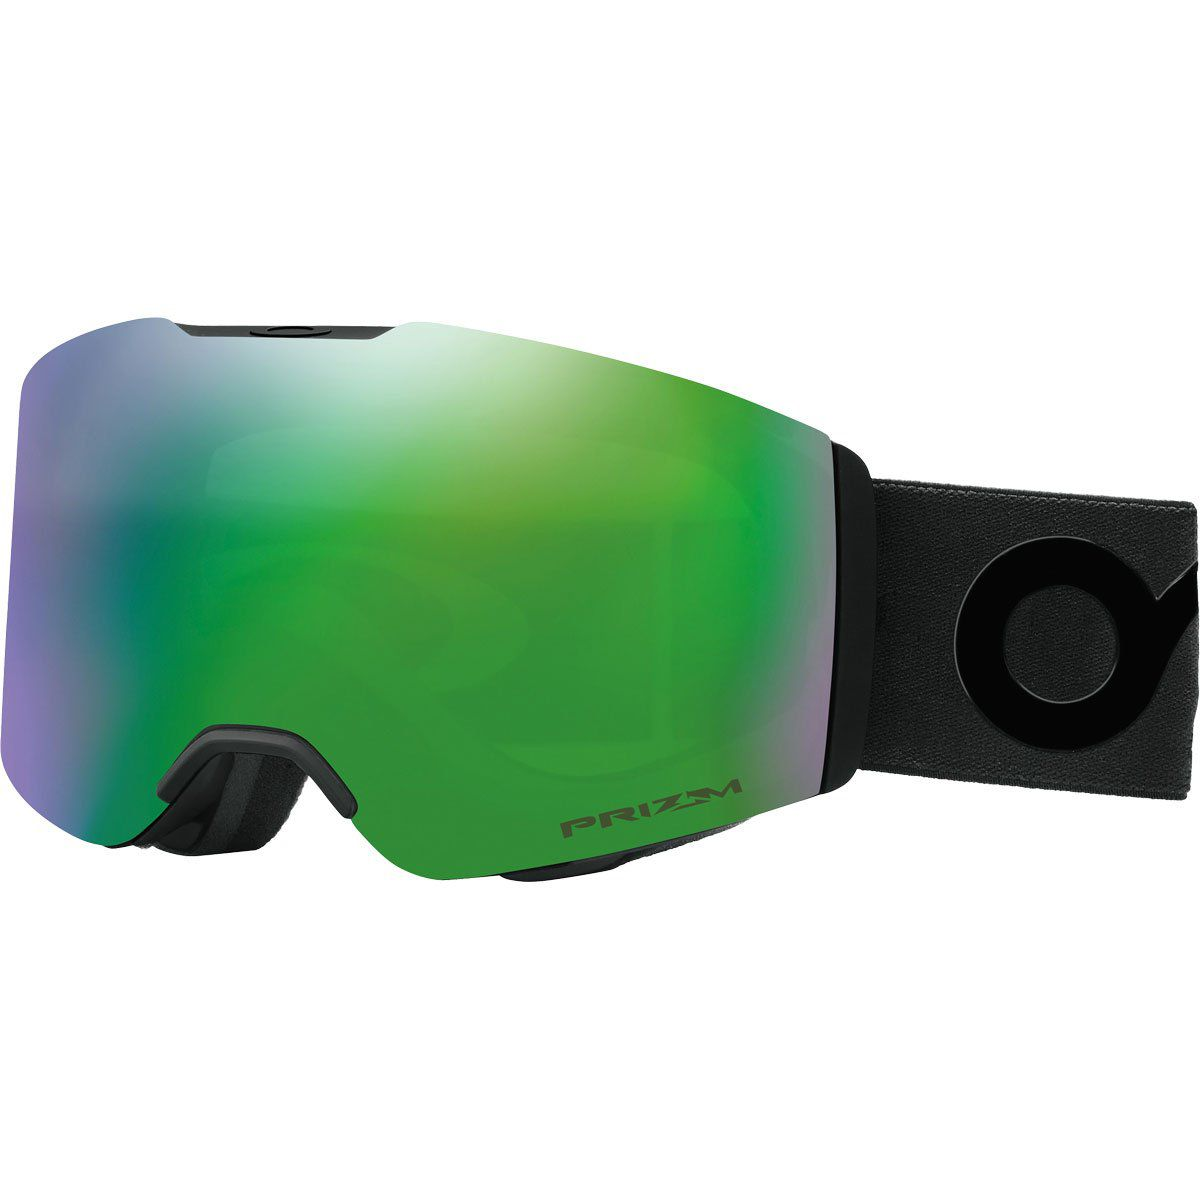 The 7 Best Snowboard Goggles Of 2020